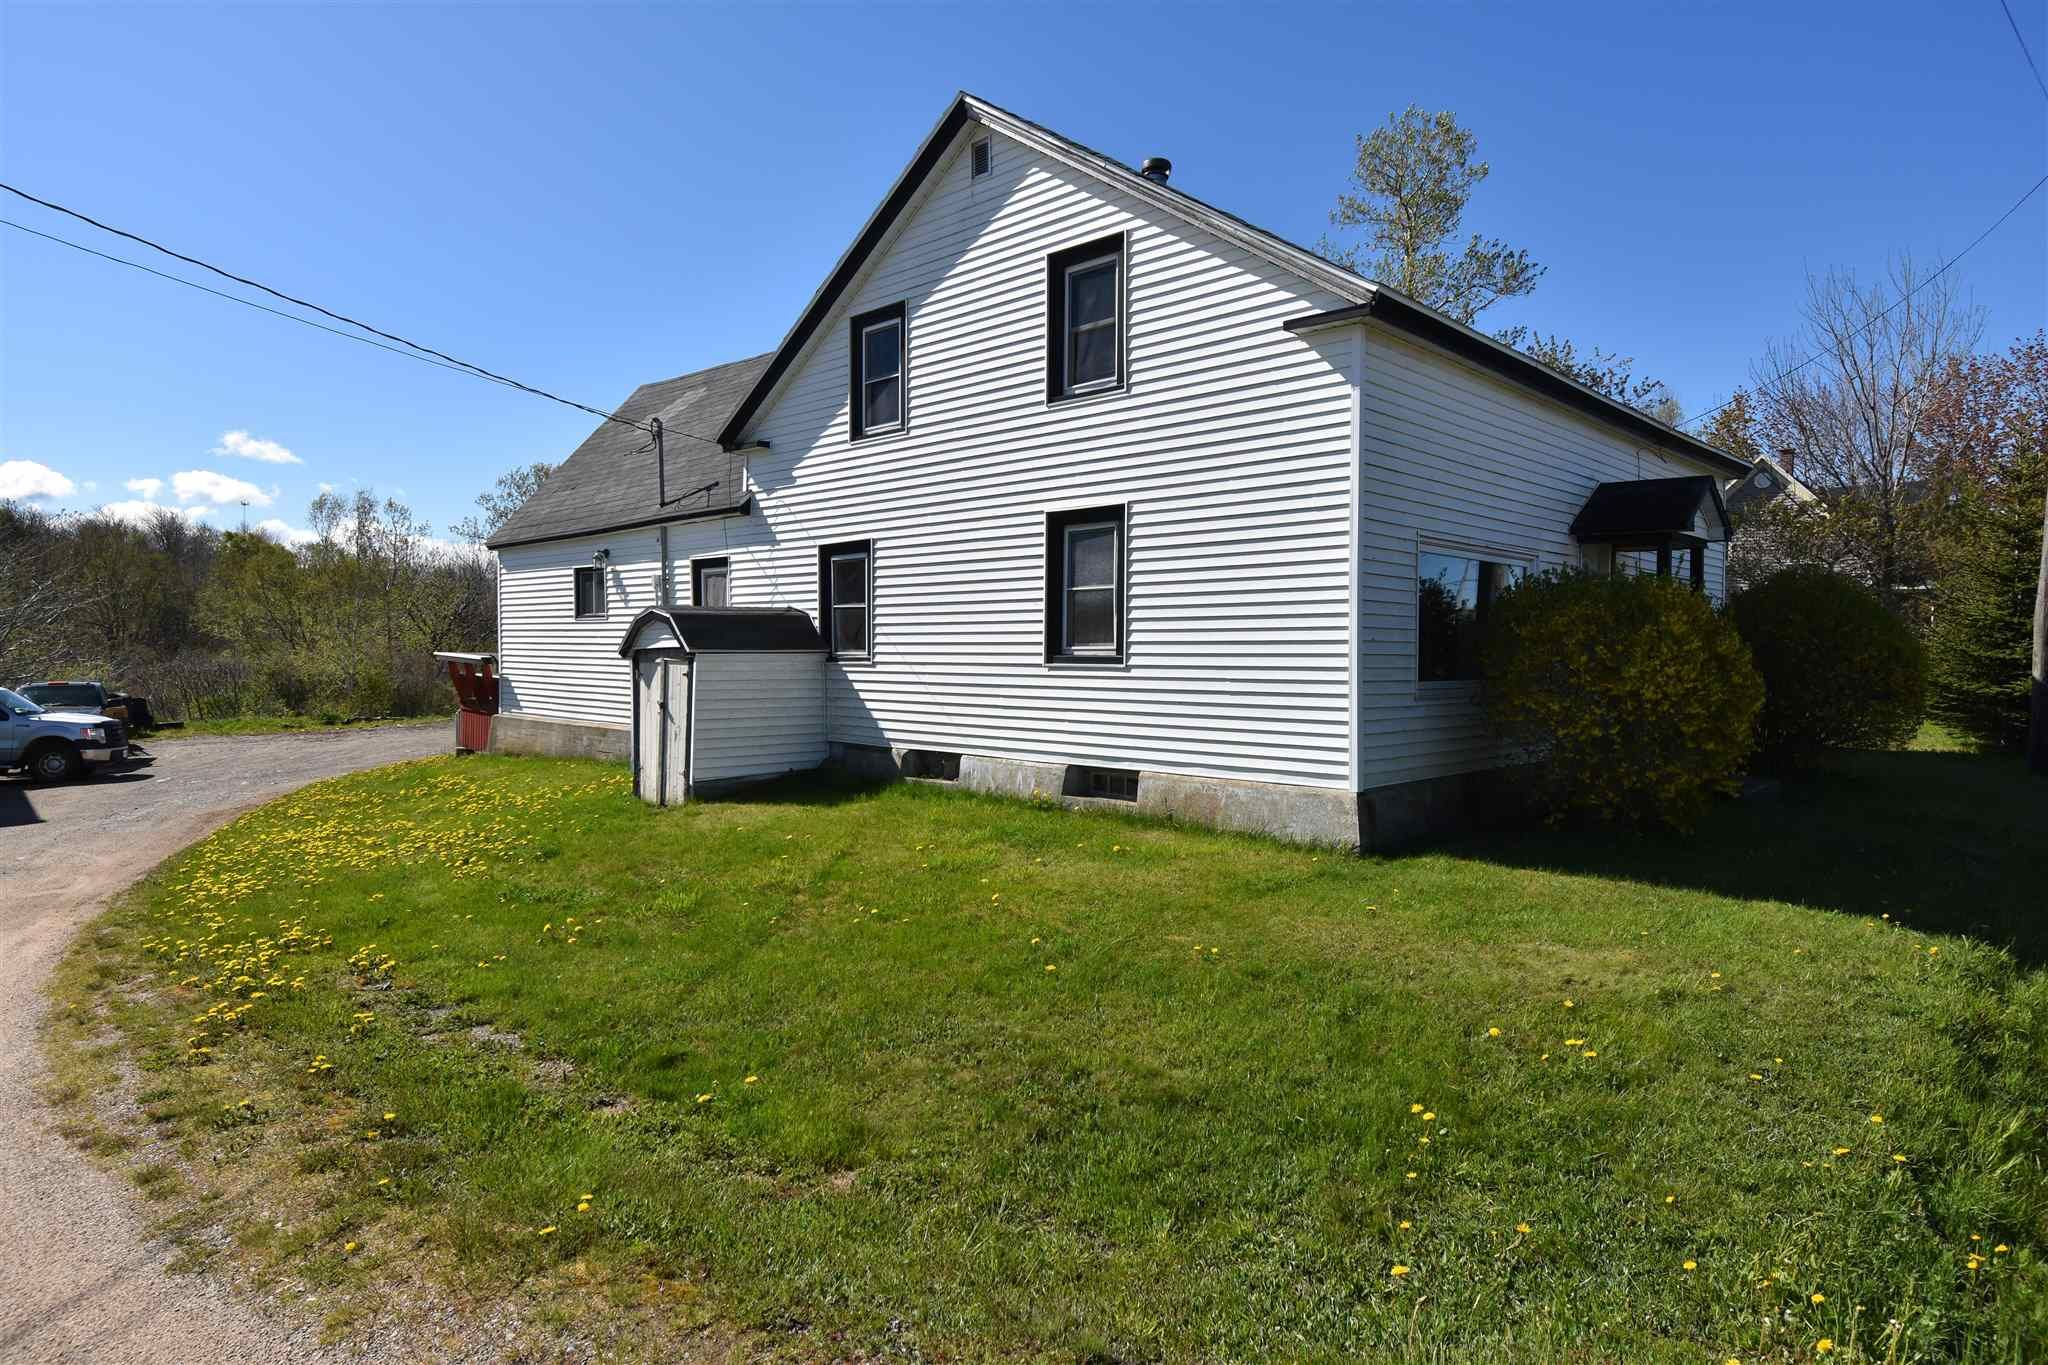 Main Photo: 6166 HIGHWAY 101 in Ashmore: 401-Digby County Residential for sale (Annapolis Valley)  : MLS®# 202112344